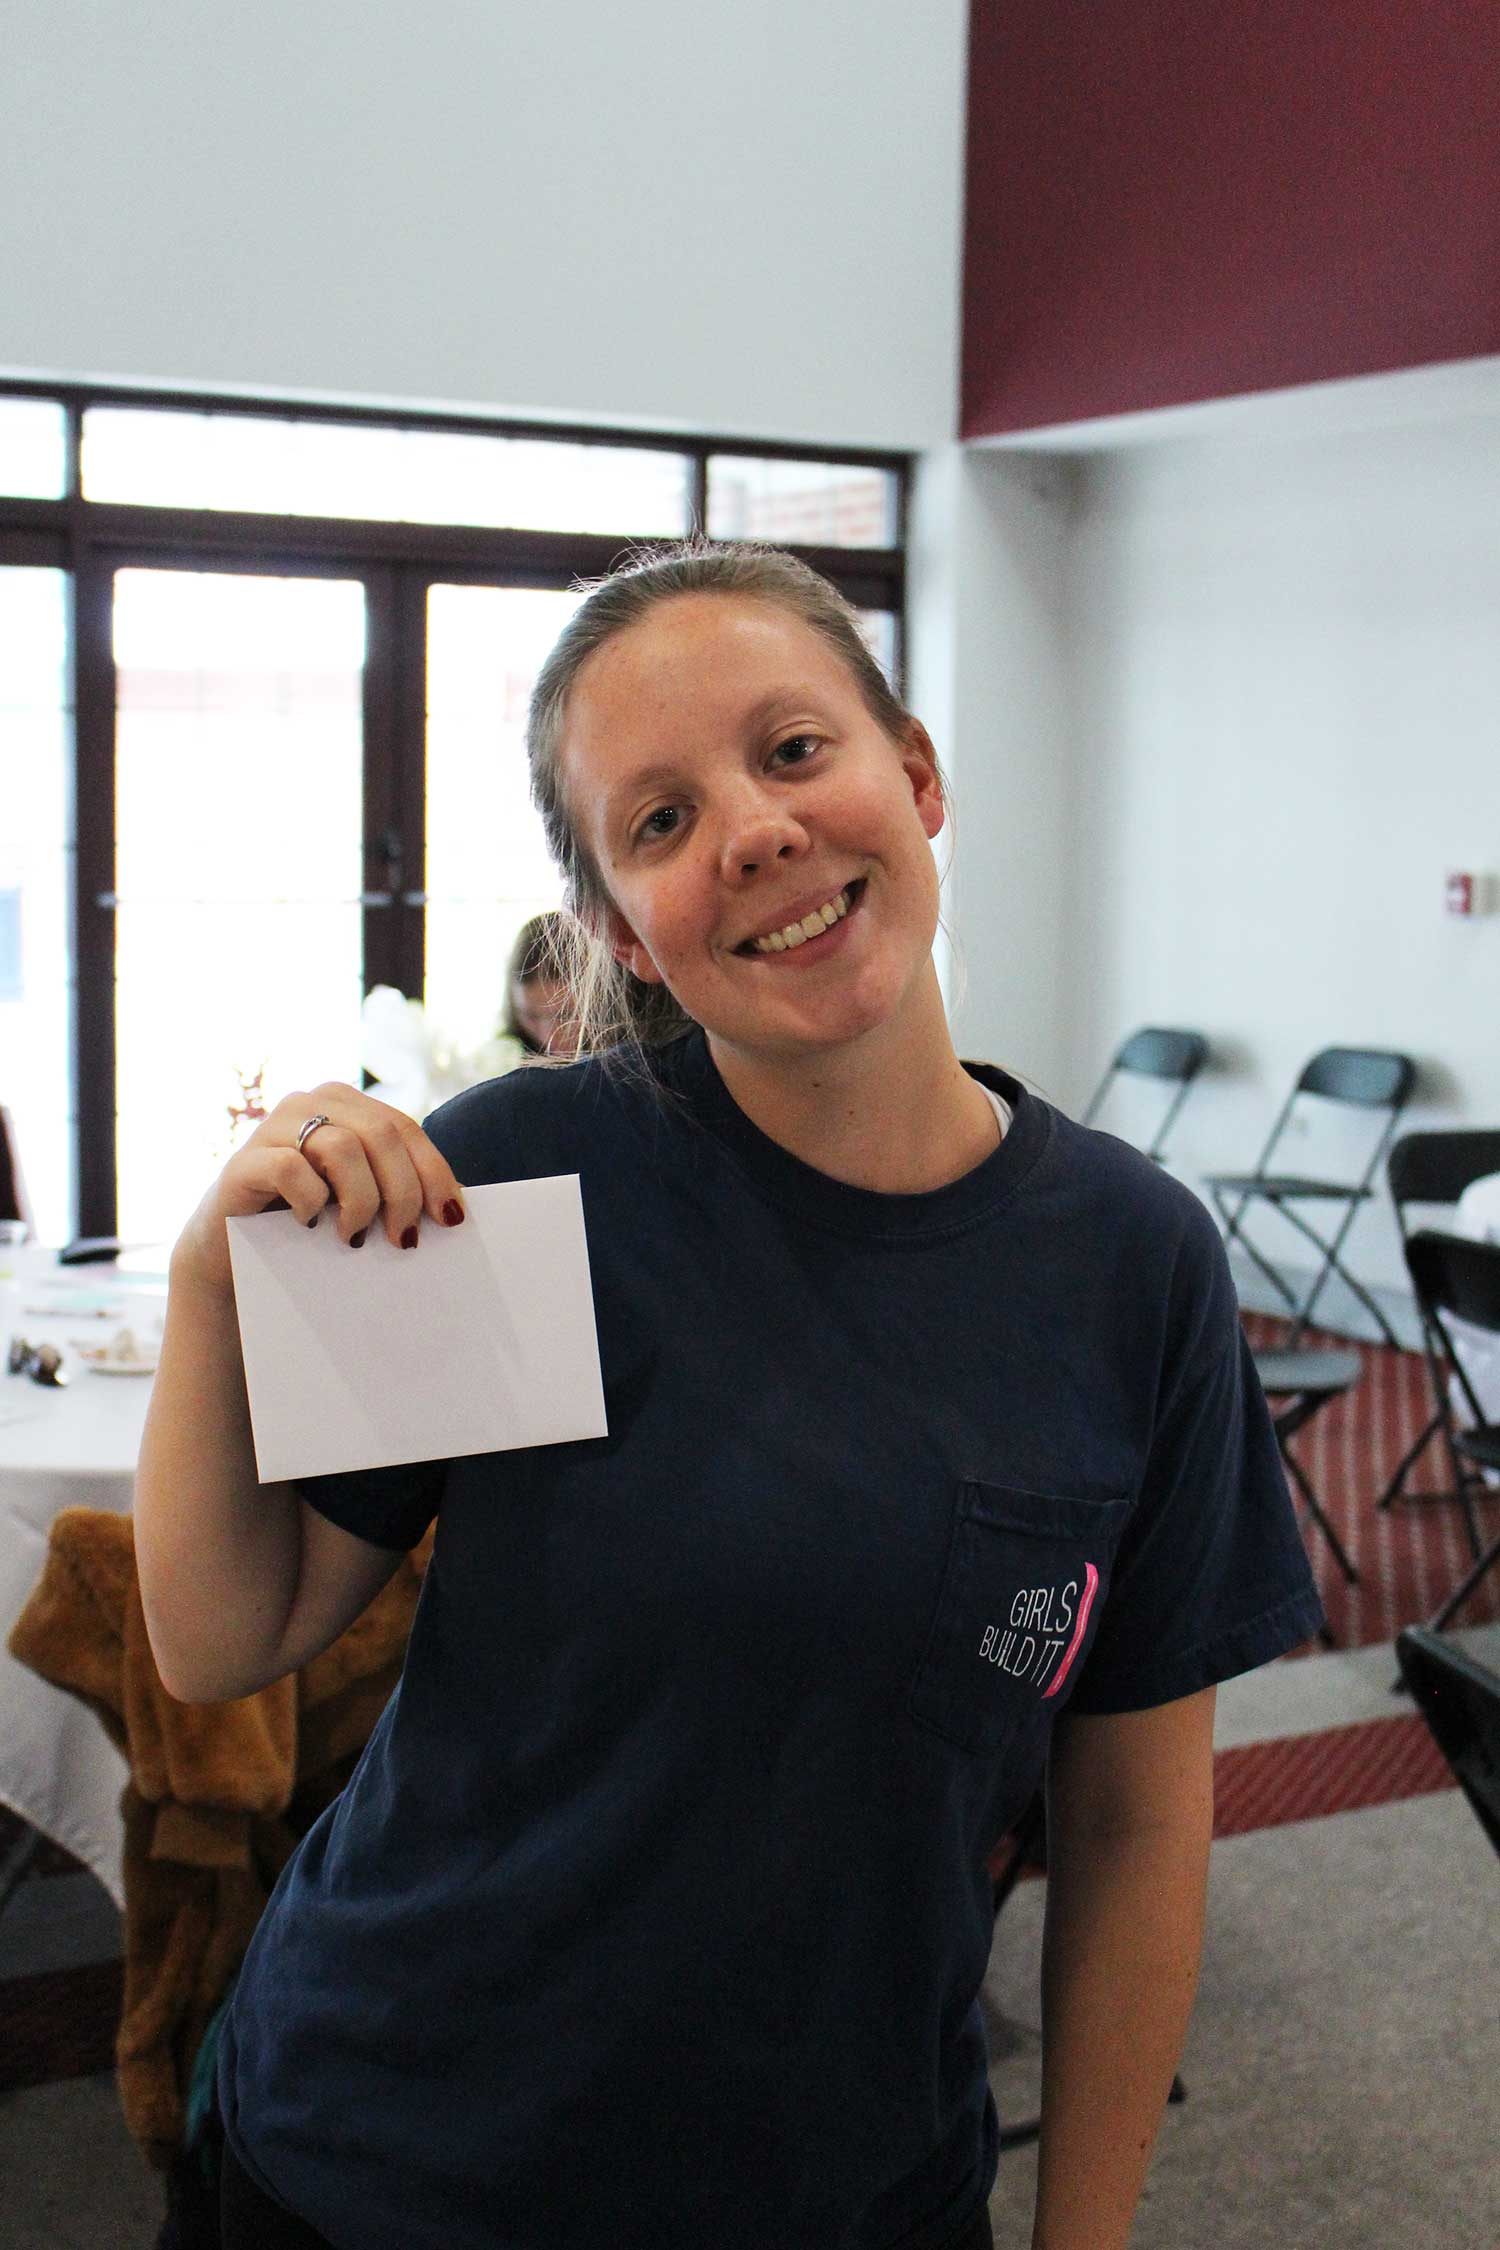 Jalyn Wallin smiles with gift card envelope in hand